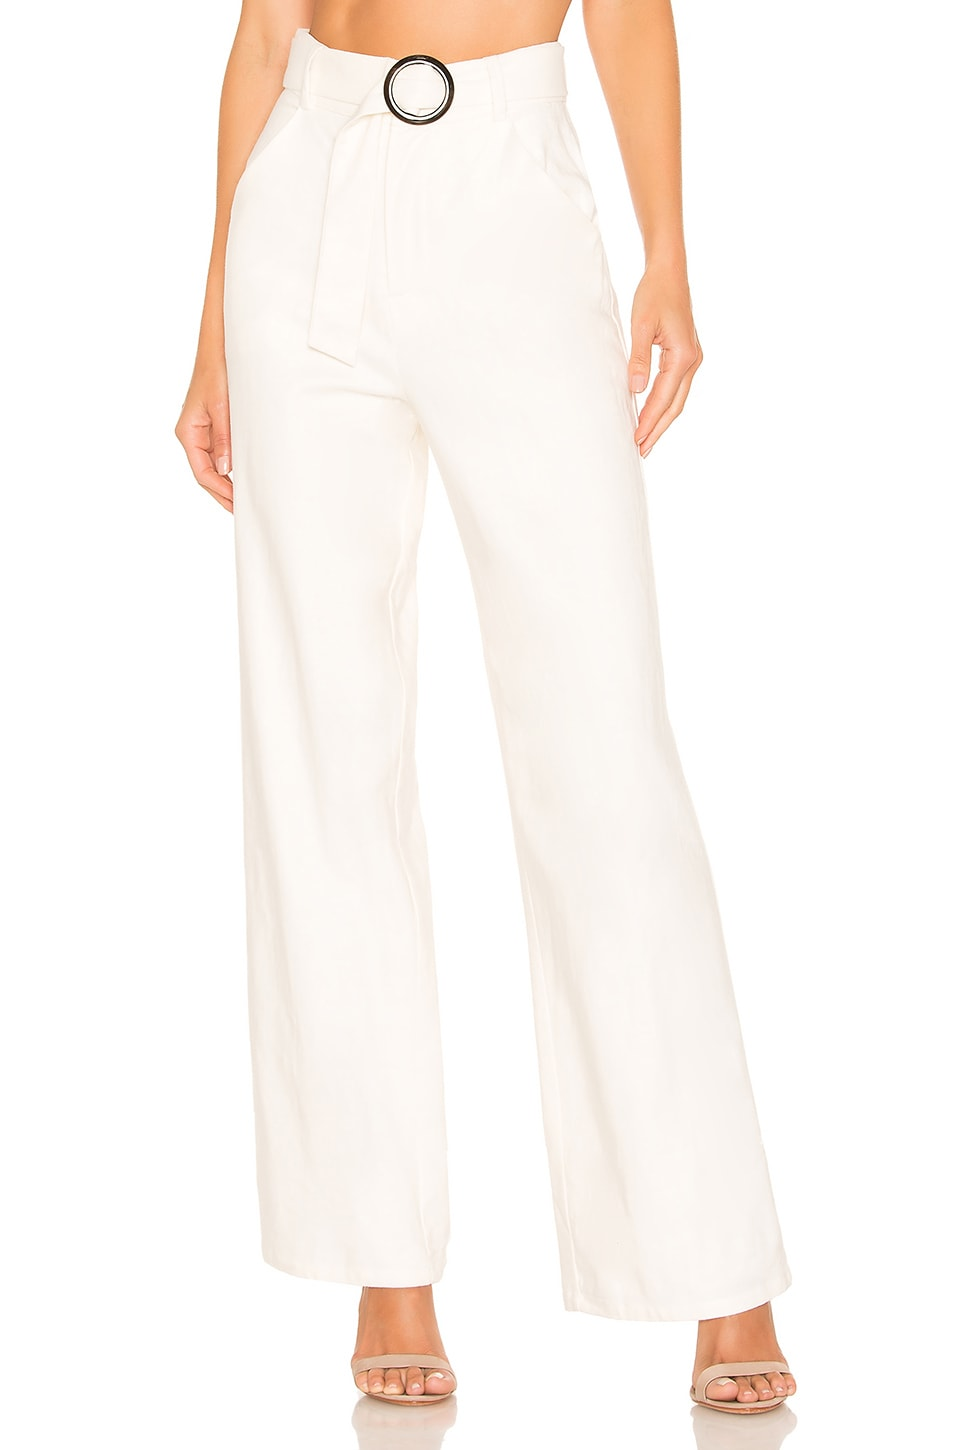 Lovers + Friends Suri Pant in White